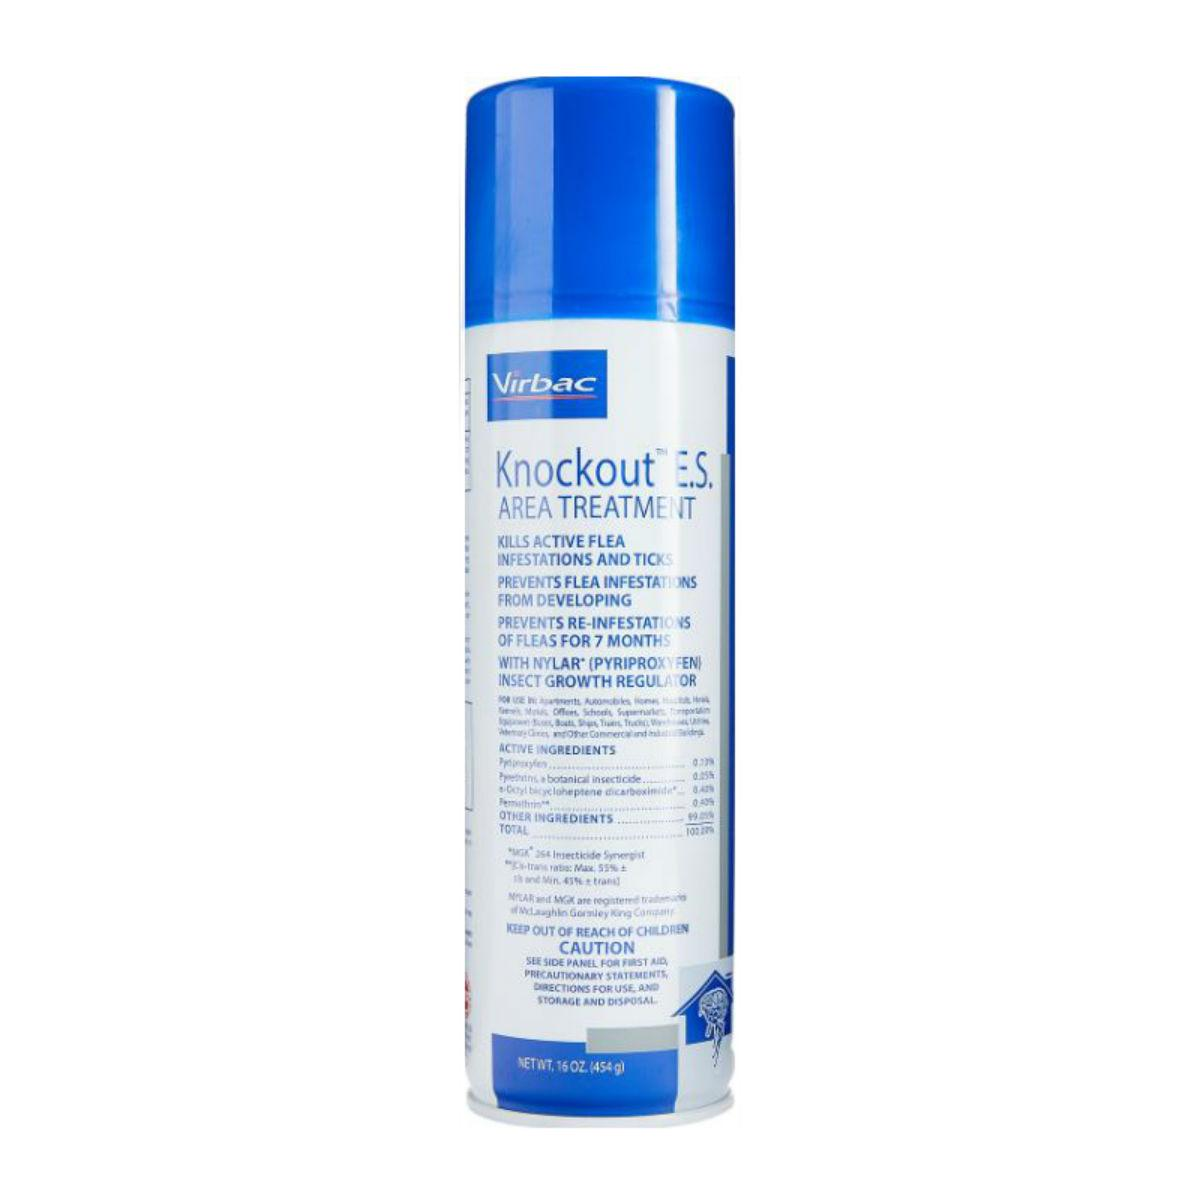 Virbac Knockout E.S. Area Treatment Spray